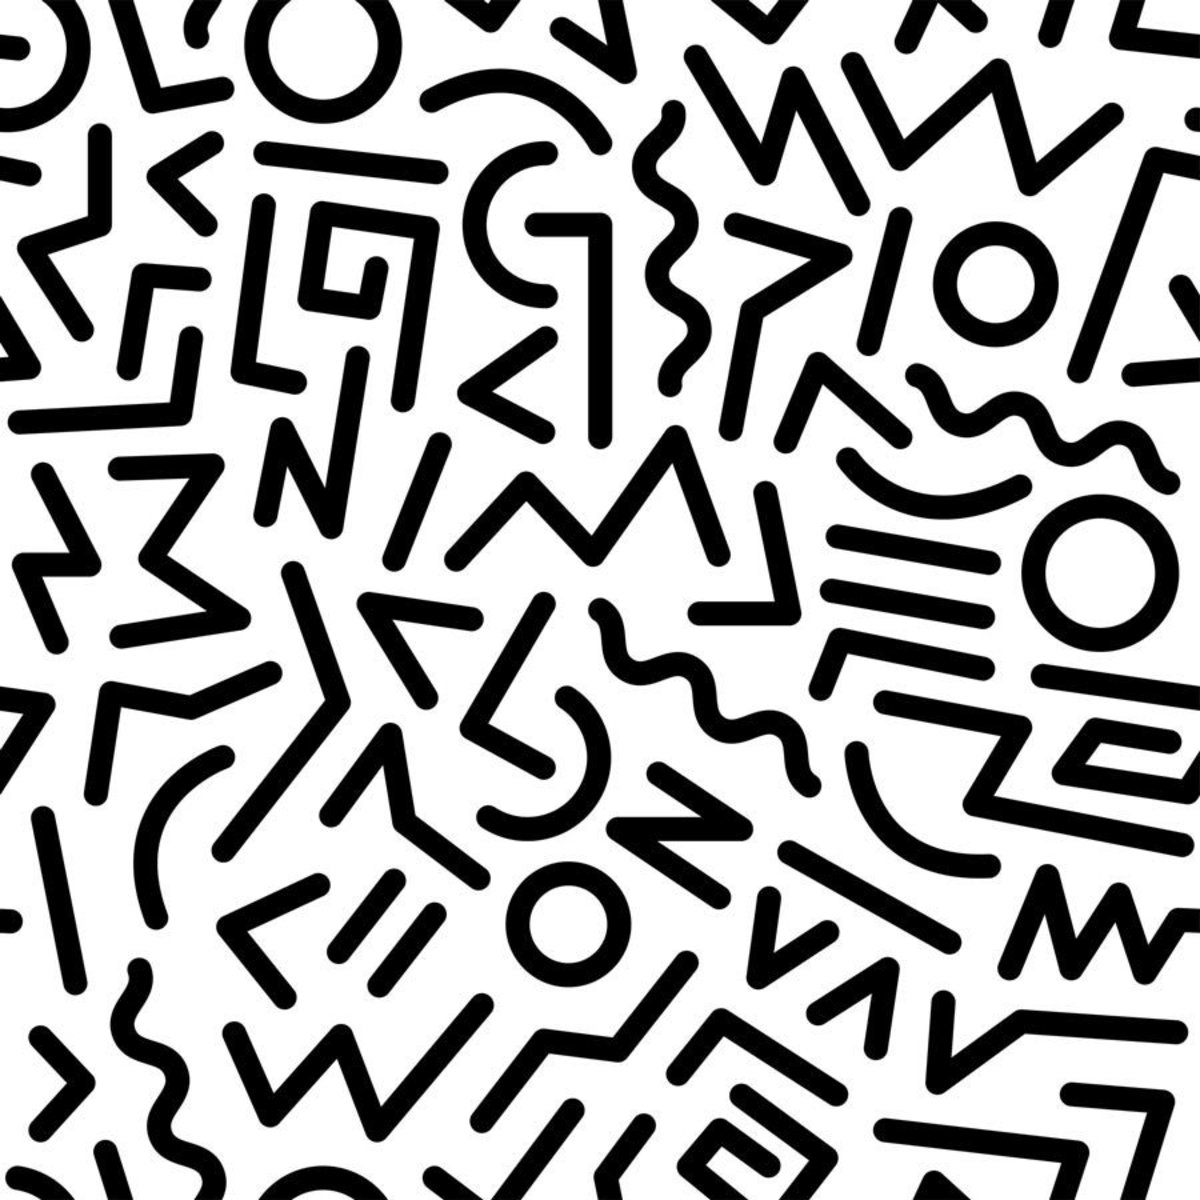 combination of organic and linear shapes, this scribble-like pattern